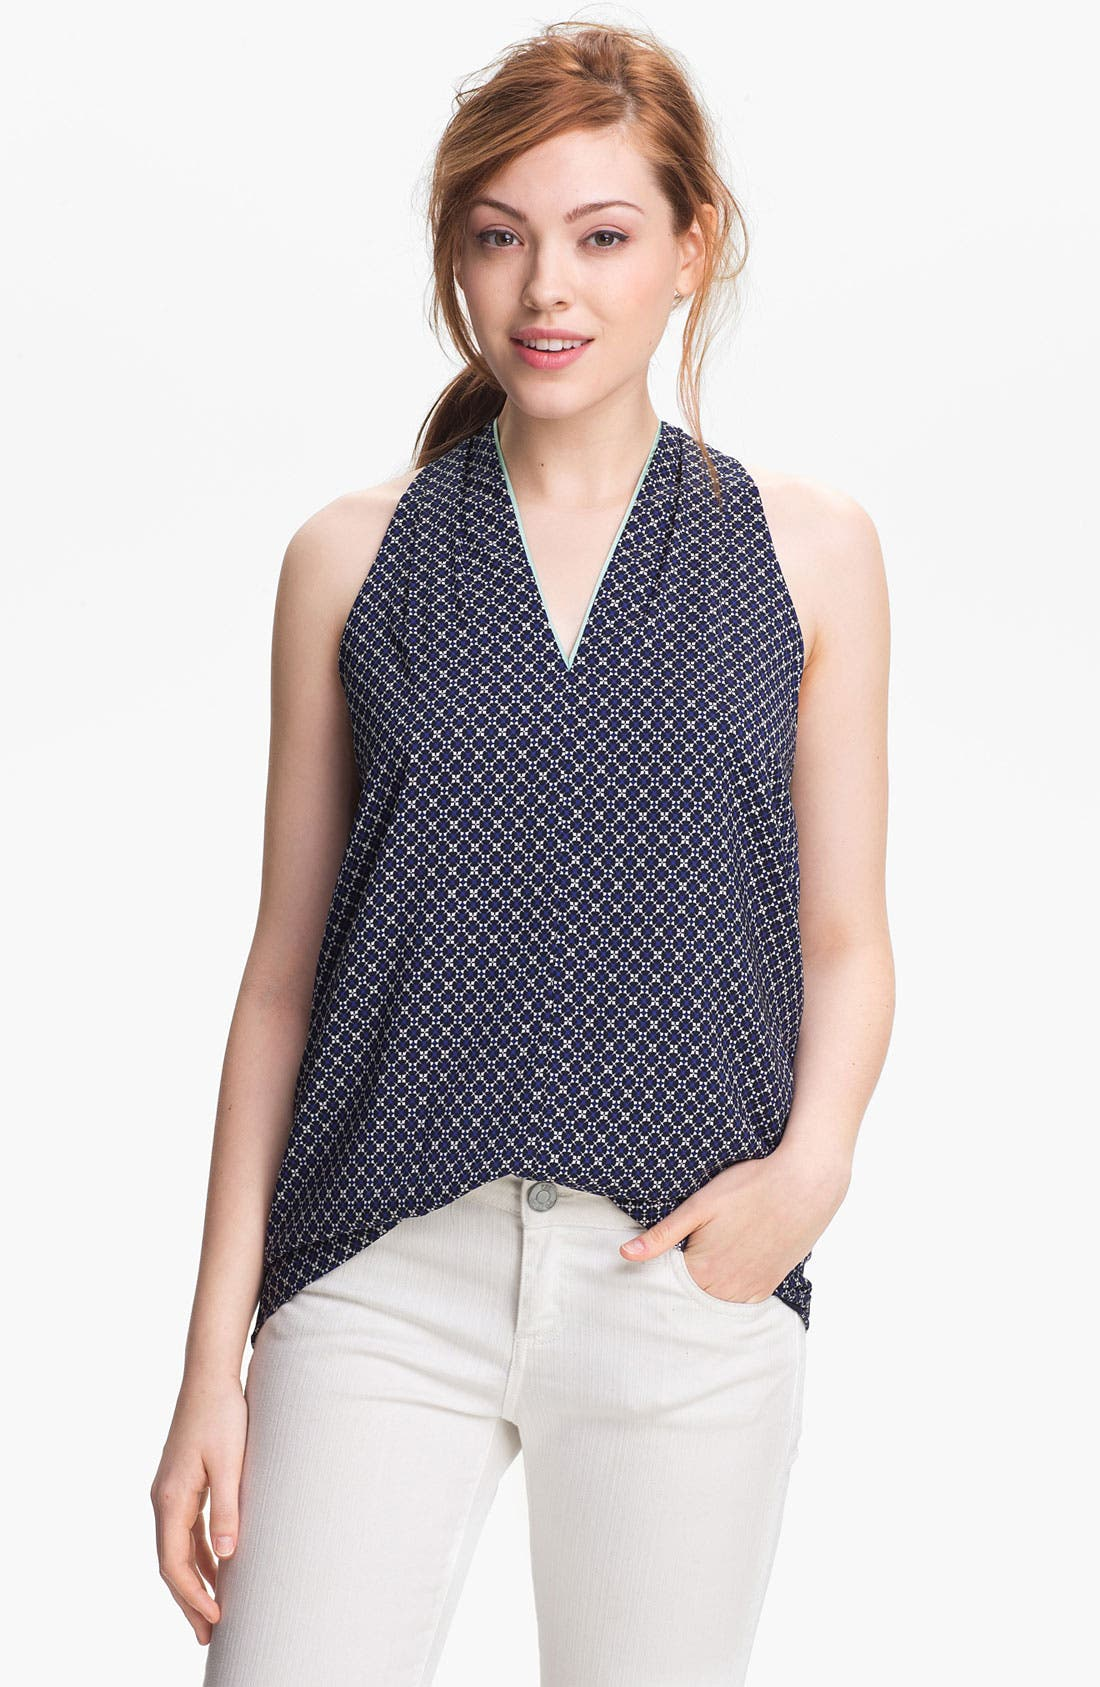 Alternate Image 1 Selected - Vince Camuto 'Geo Floral' Sleeveless Blouse